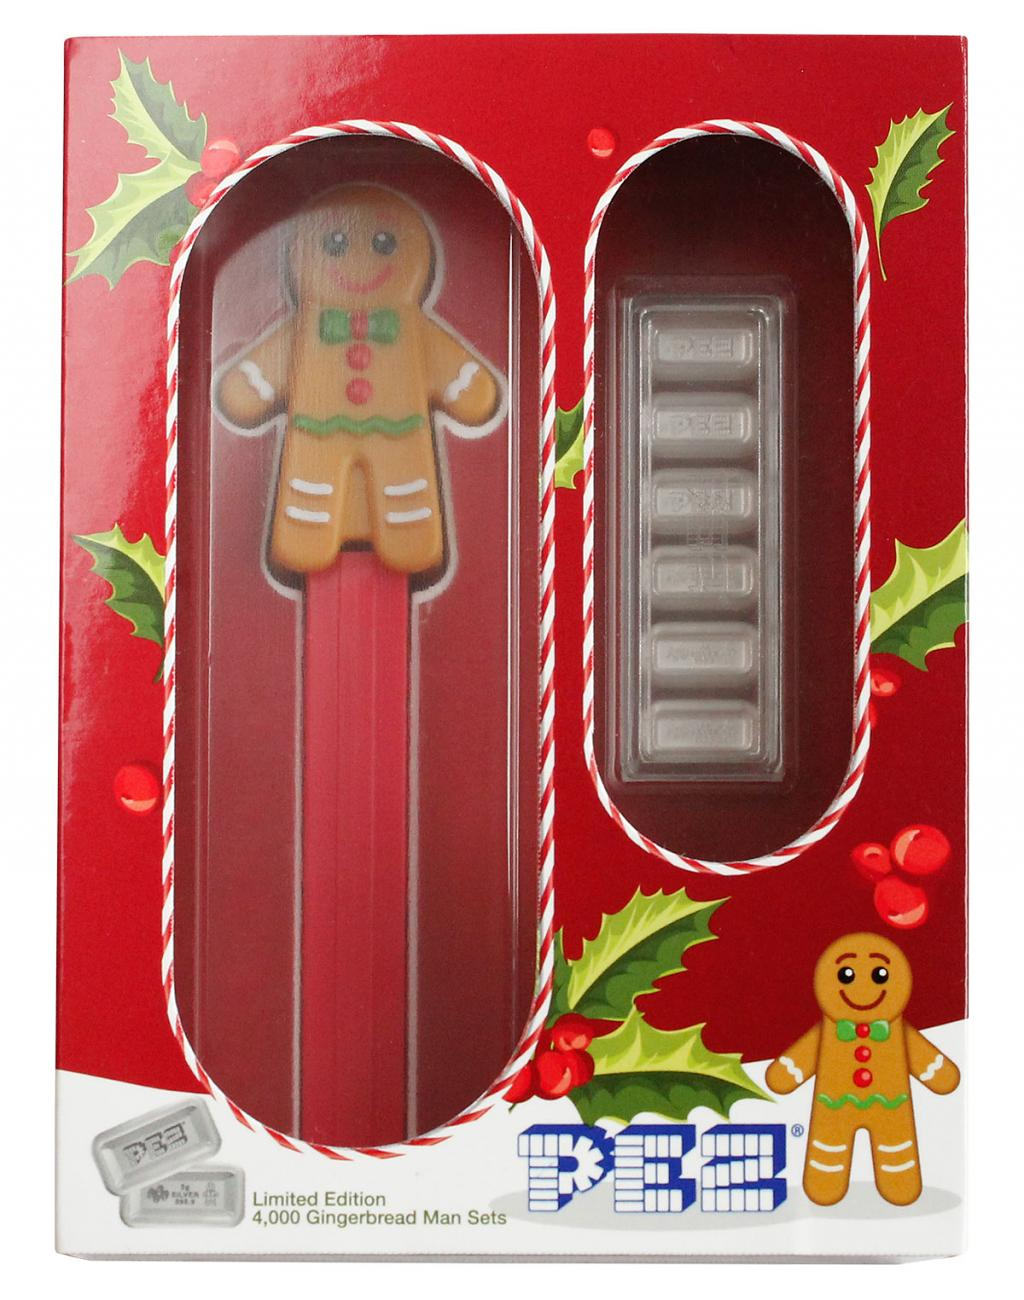 6-Piece Set - PAMP Gingerbread Man Pez Dispenser 5 g Silver Bar GEM Reverse Proof